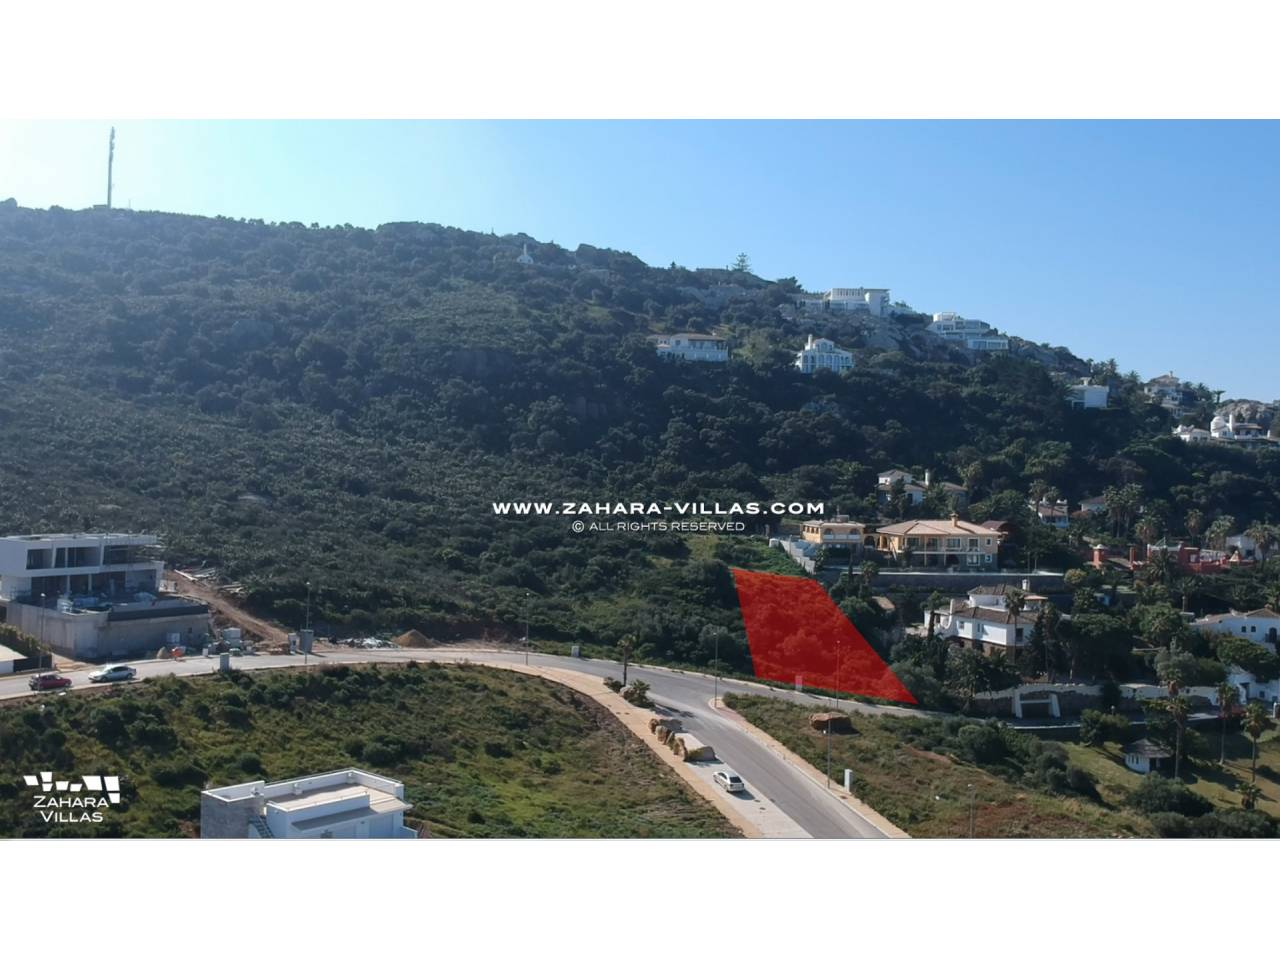 Imagen 1 de Plot in a new residential area overlooking the Sea and the future Golf Course